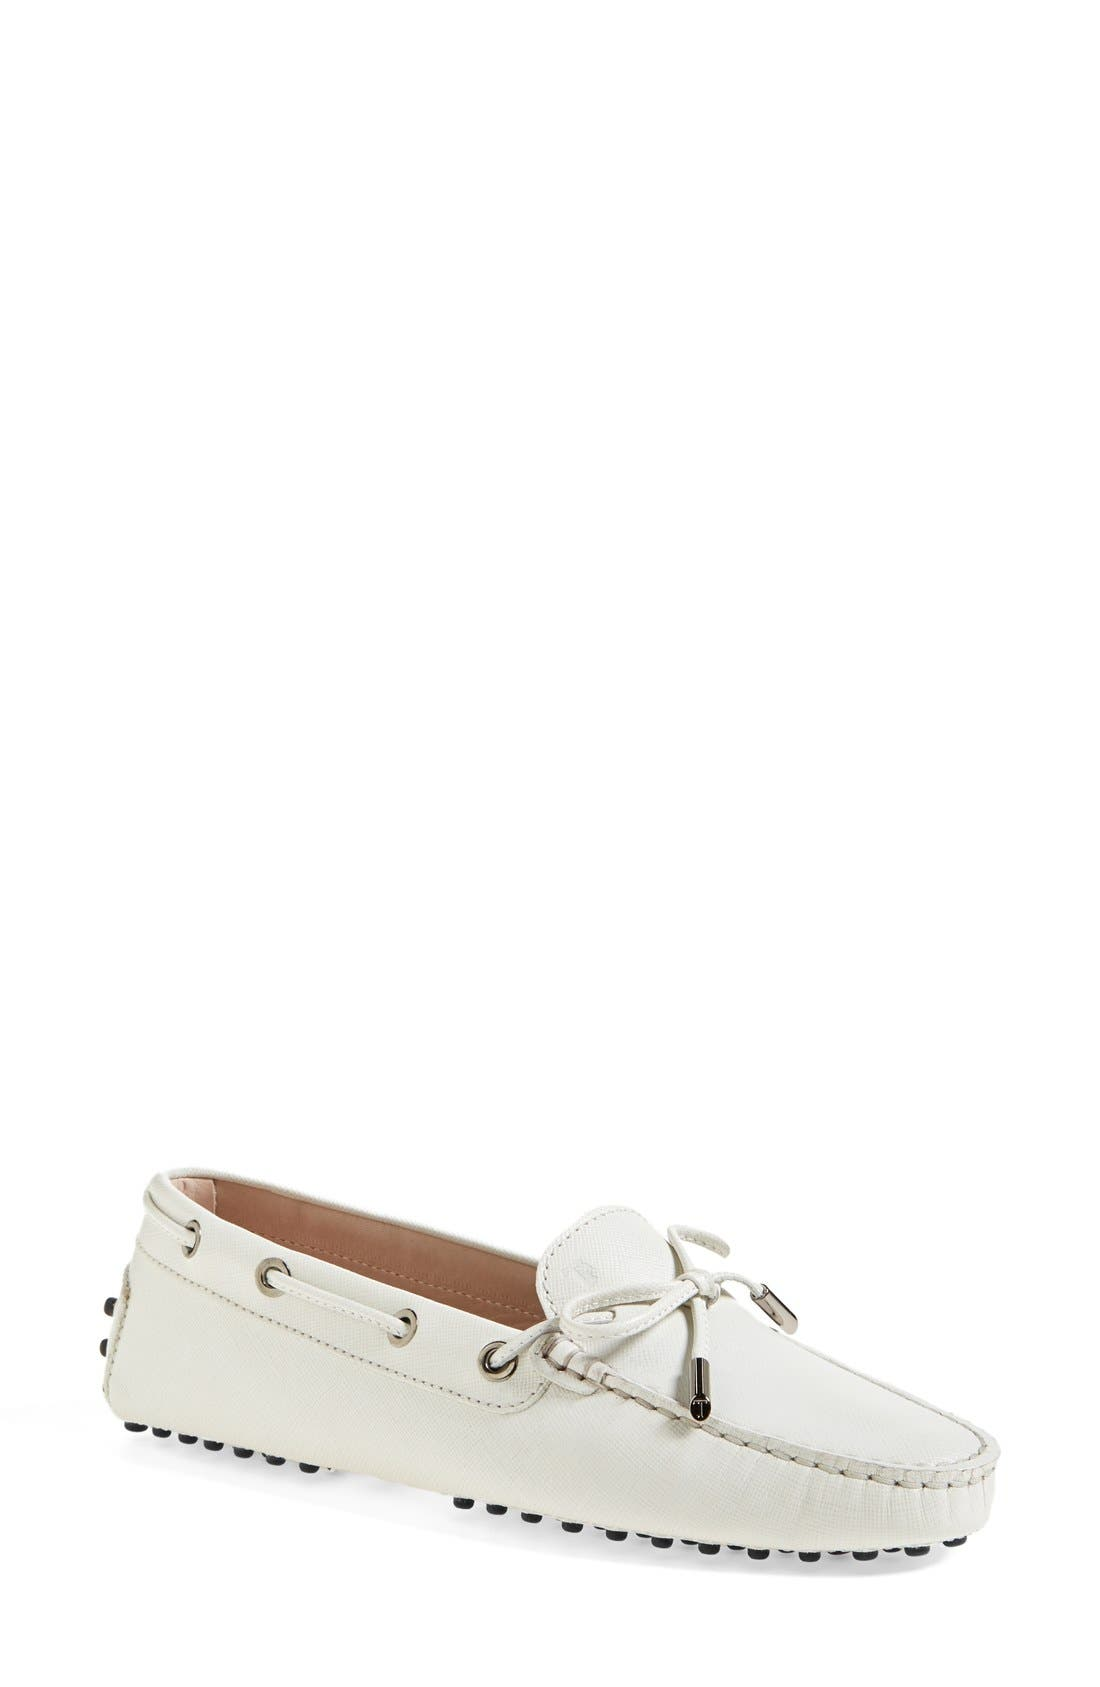 Alternate Image 1 Selected - Tod's 'Gommini' Tie Front Leather Driving Moccasin (Women)